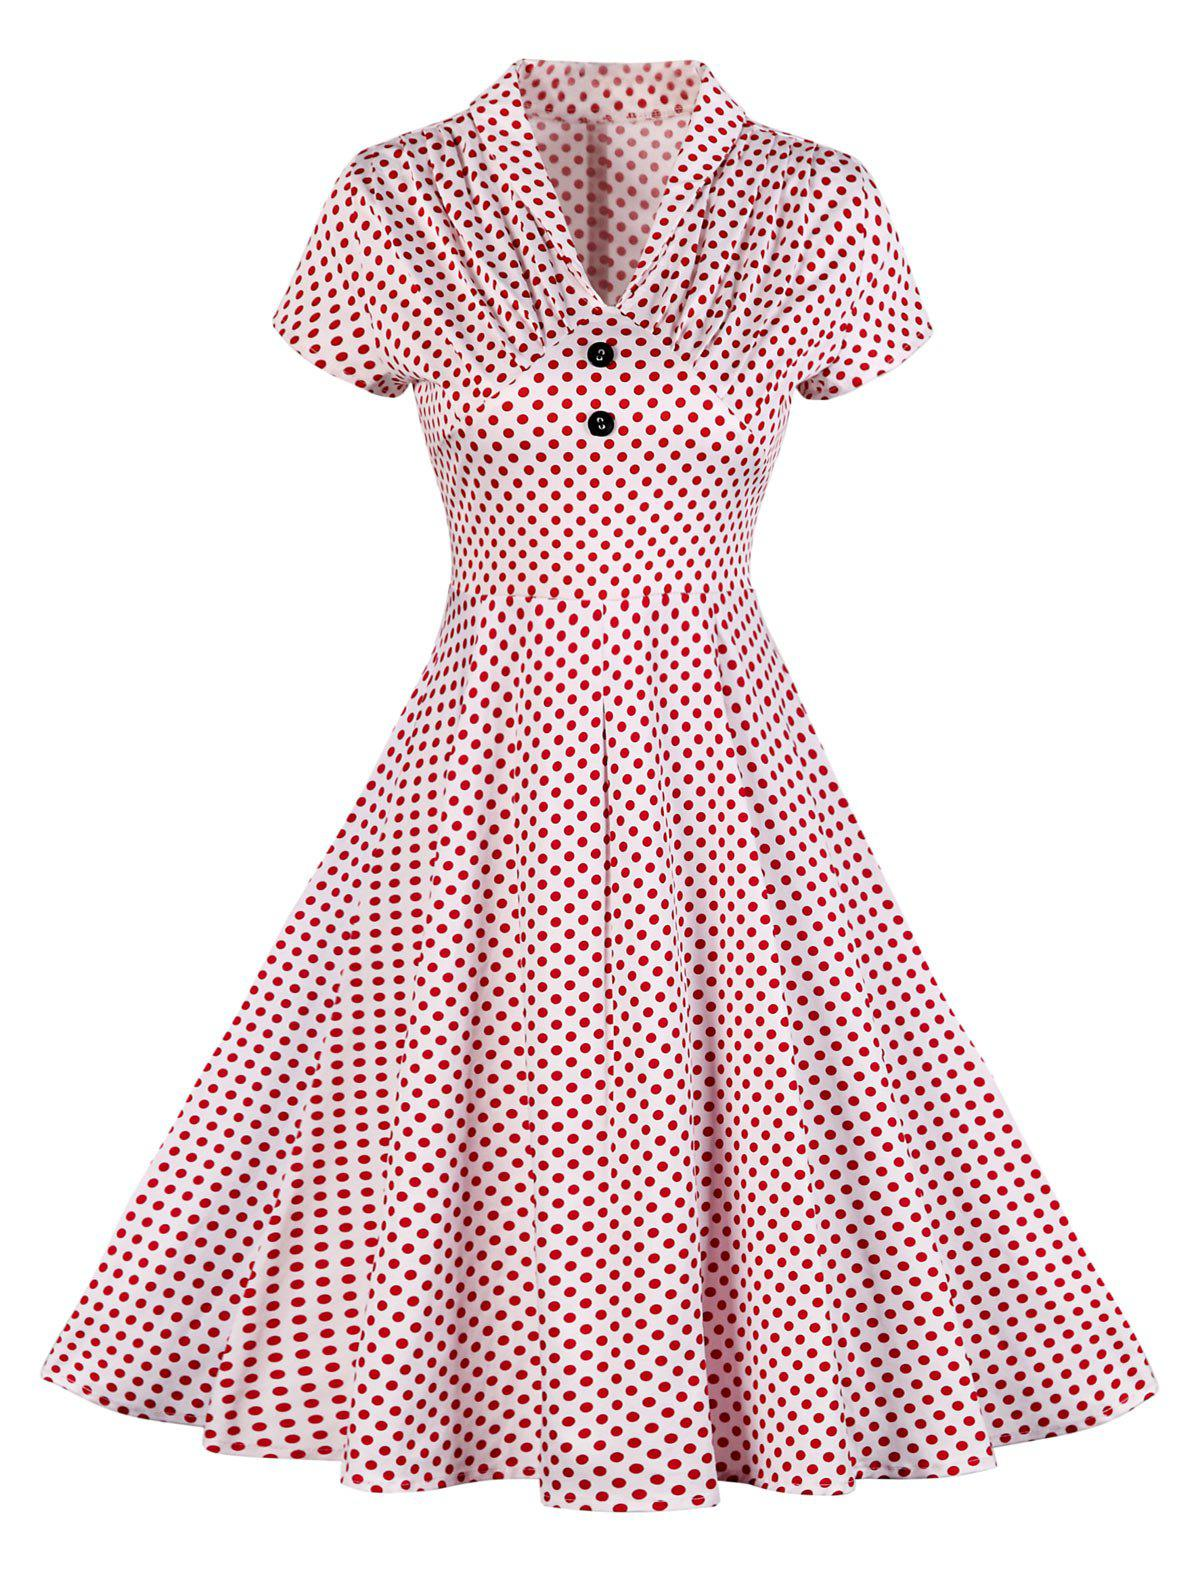 Buttoned Polka Dot V Neck Skater DressWOMEN<br><br>Size: L; Color: RED; Style: Vintage; Material: Polyester; Silhouette: A-Line; Dresses Length: Knee-Length; Neckline: V-Neck; Sleeve Length: Short Sleeves; Pattern Type: Polka Dot; With Belt: No; Season: Summer; Weight: 0.3500kg; Package Contents: 1 x Dress;